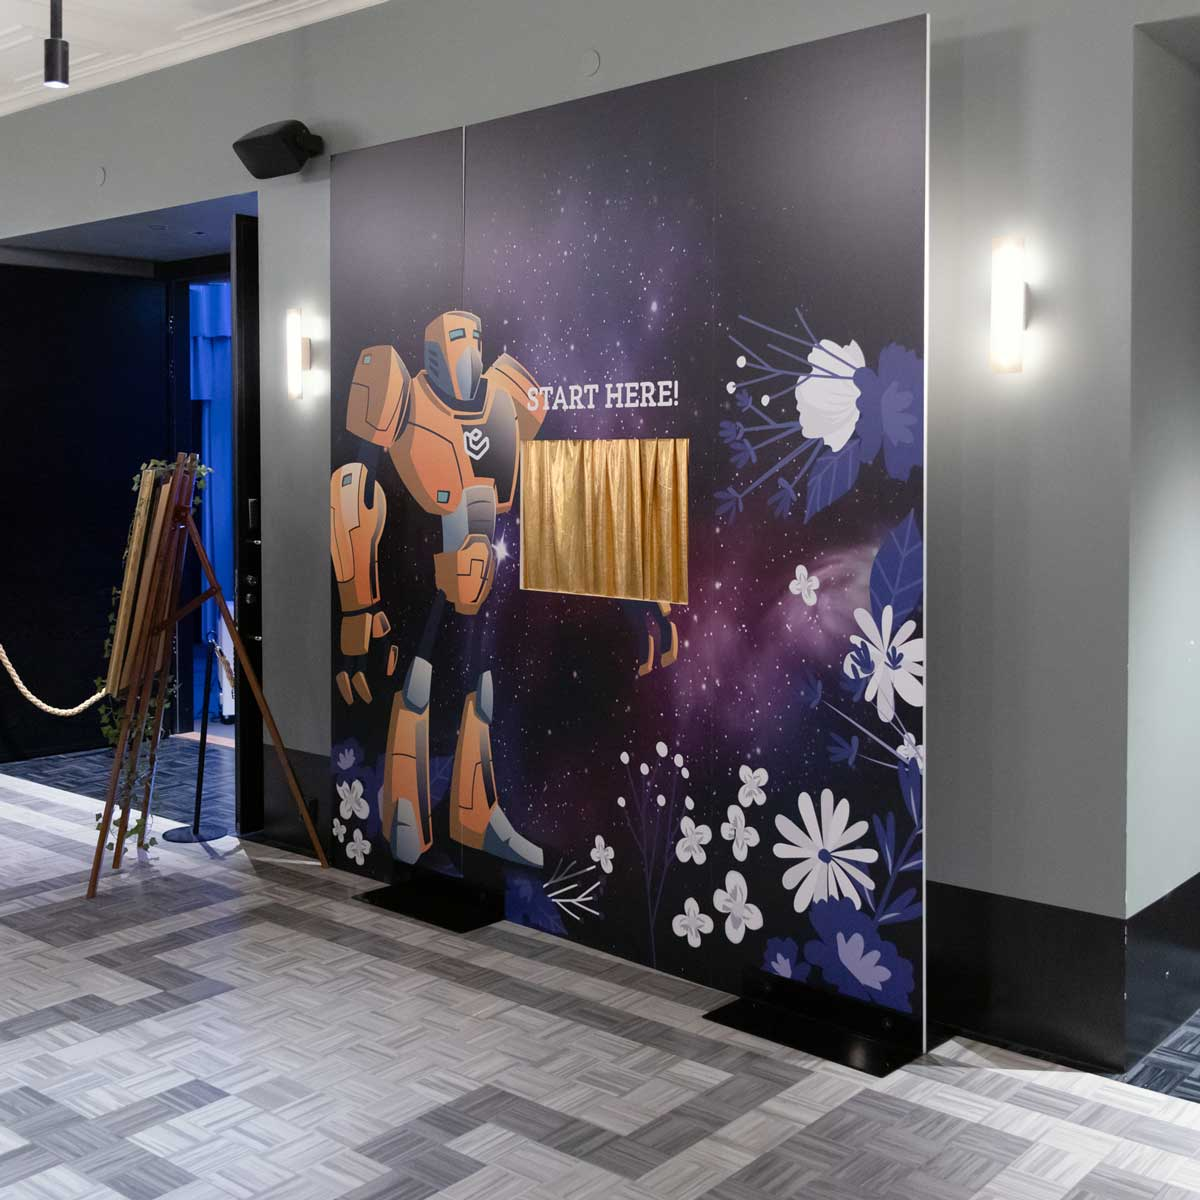 Epicenter Helsinki Launch Party Backdrops and Walls by Framme